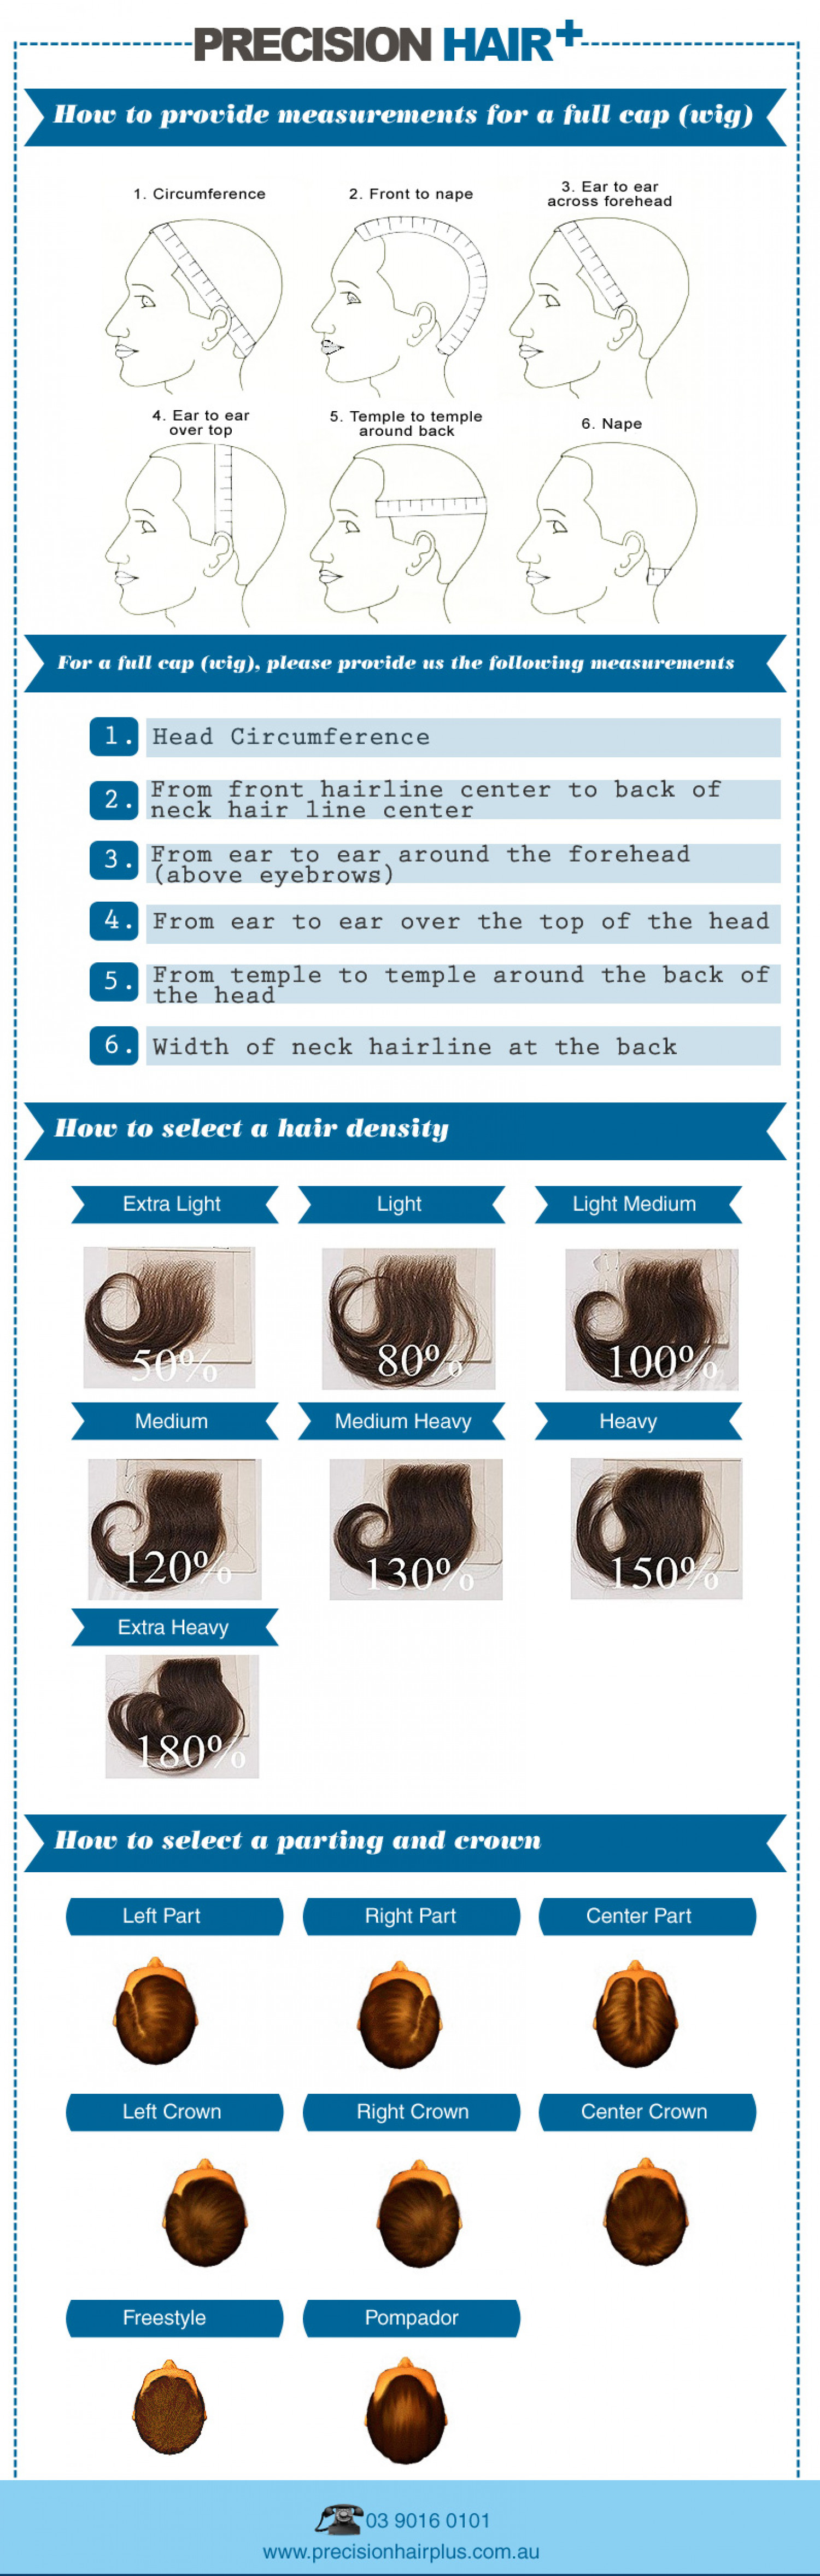 hair replacement australia Infographic